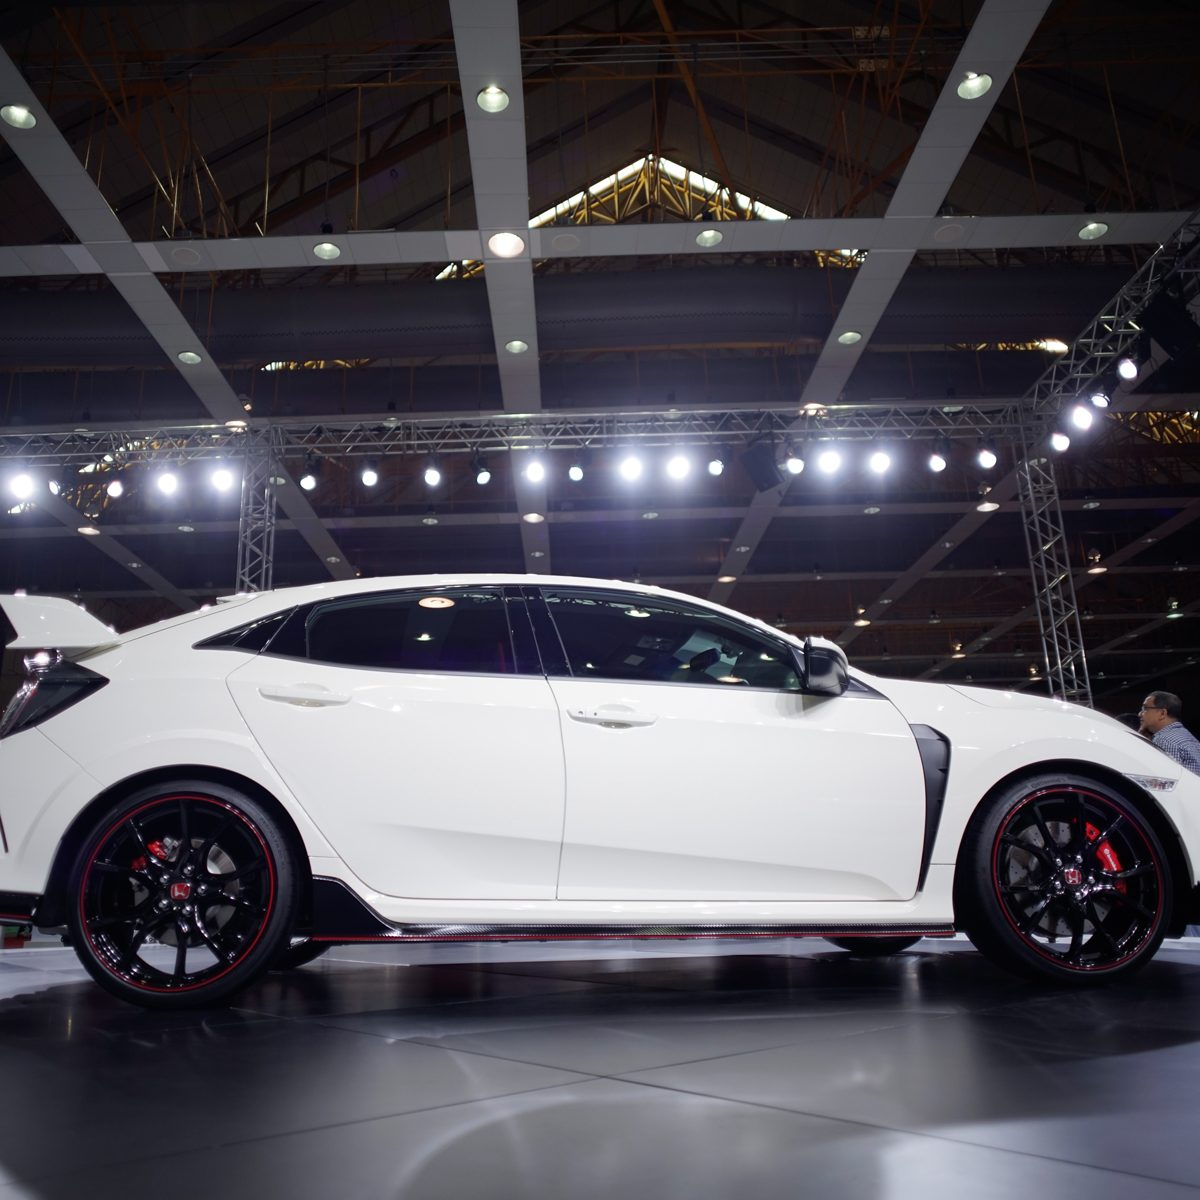 2017 : Honda Civic Type R, presented at the Malaysia Autoshow 2017 in Kuala Lumpur.